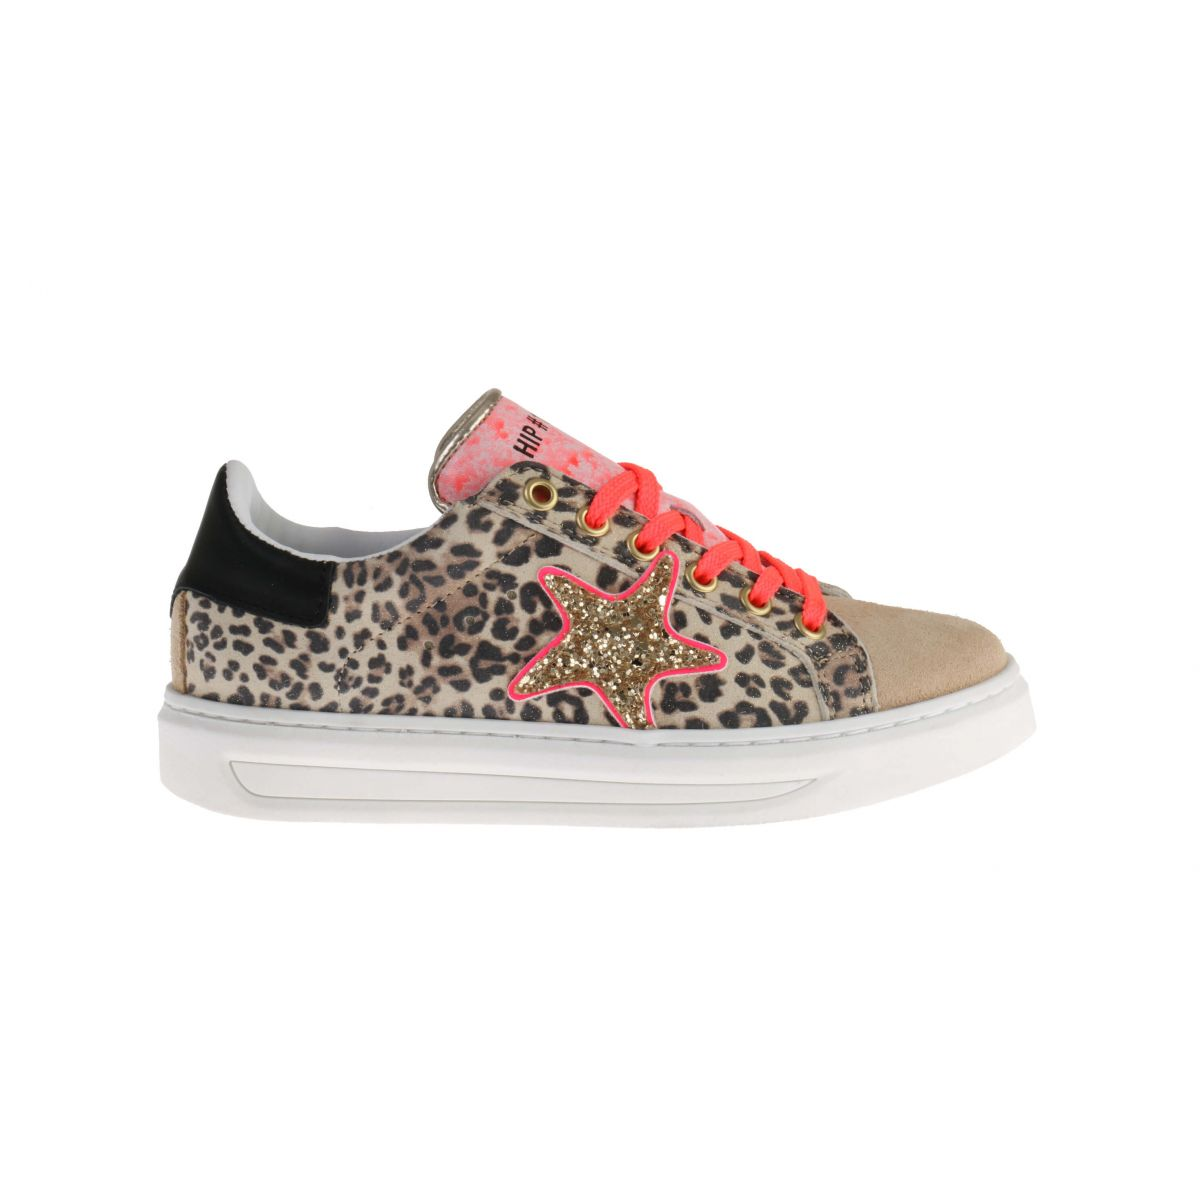 HIp H1790 Sneakers Panter Fluor Roze